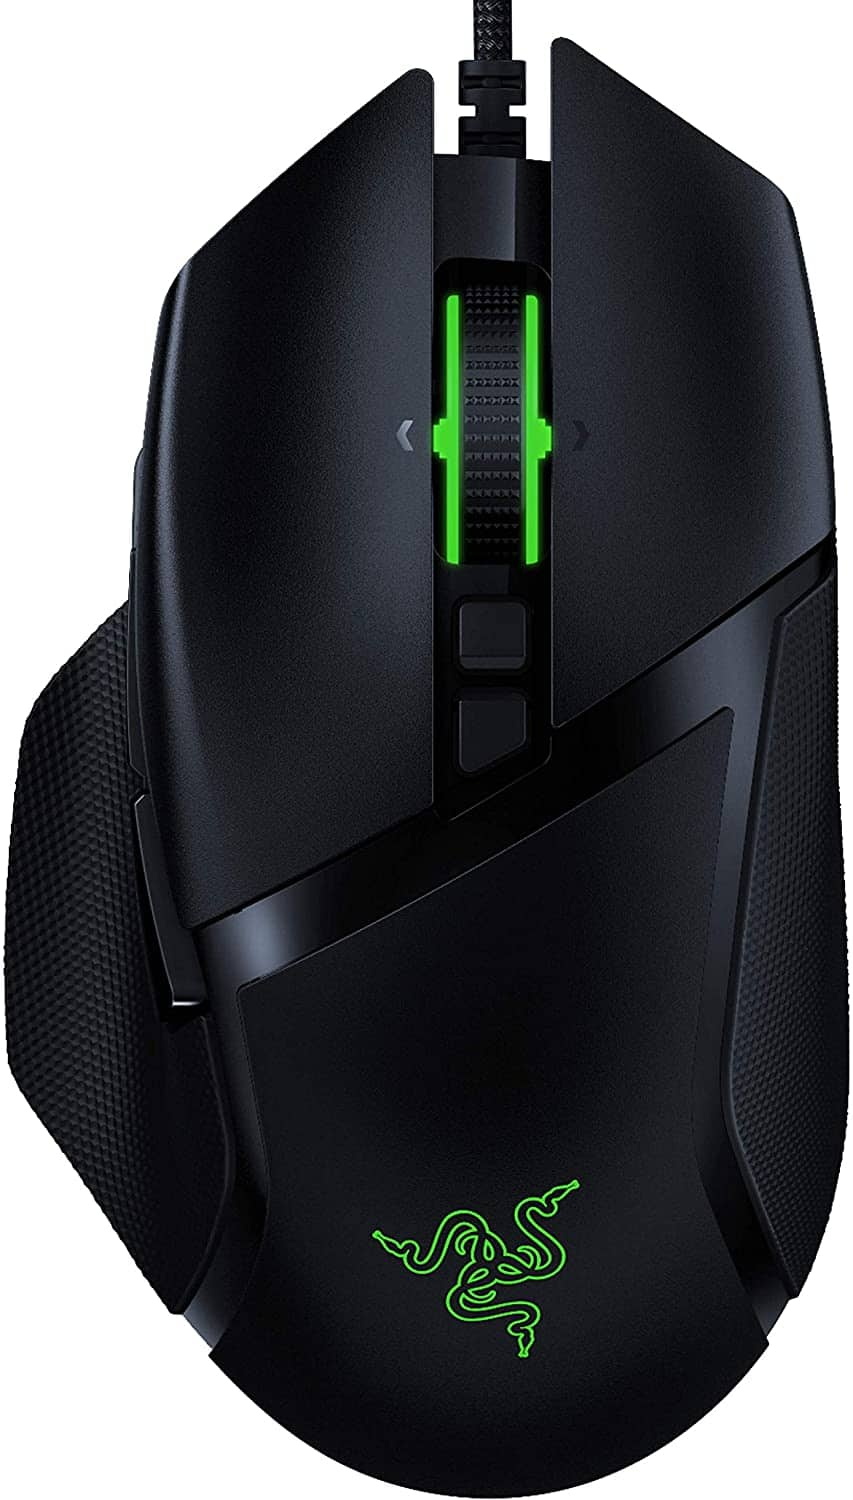 Razer Gaming Accessories/Peripherals: Razer BlackWidow TE Chroma 2 TKL Gaming Keyboard $69.99, Kraken Tournament Edition Headset $54.99, Basilisk v2 Wired Mouse $44.99 via Amazon